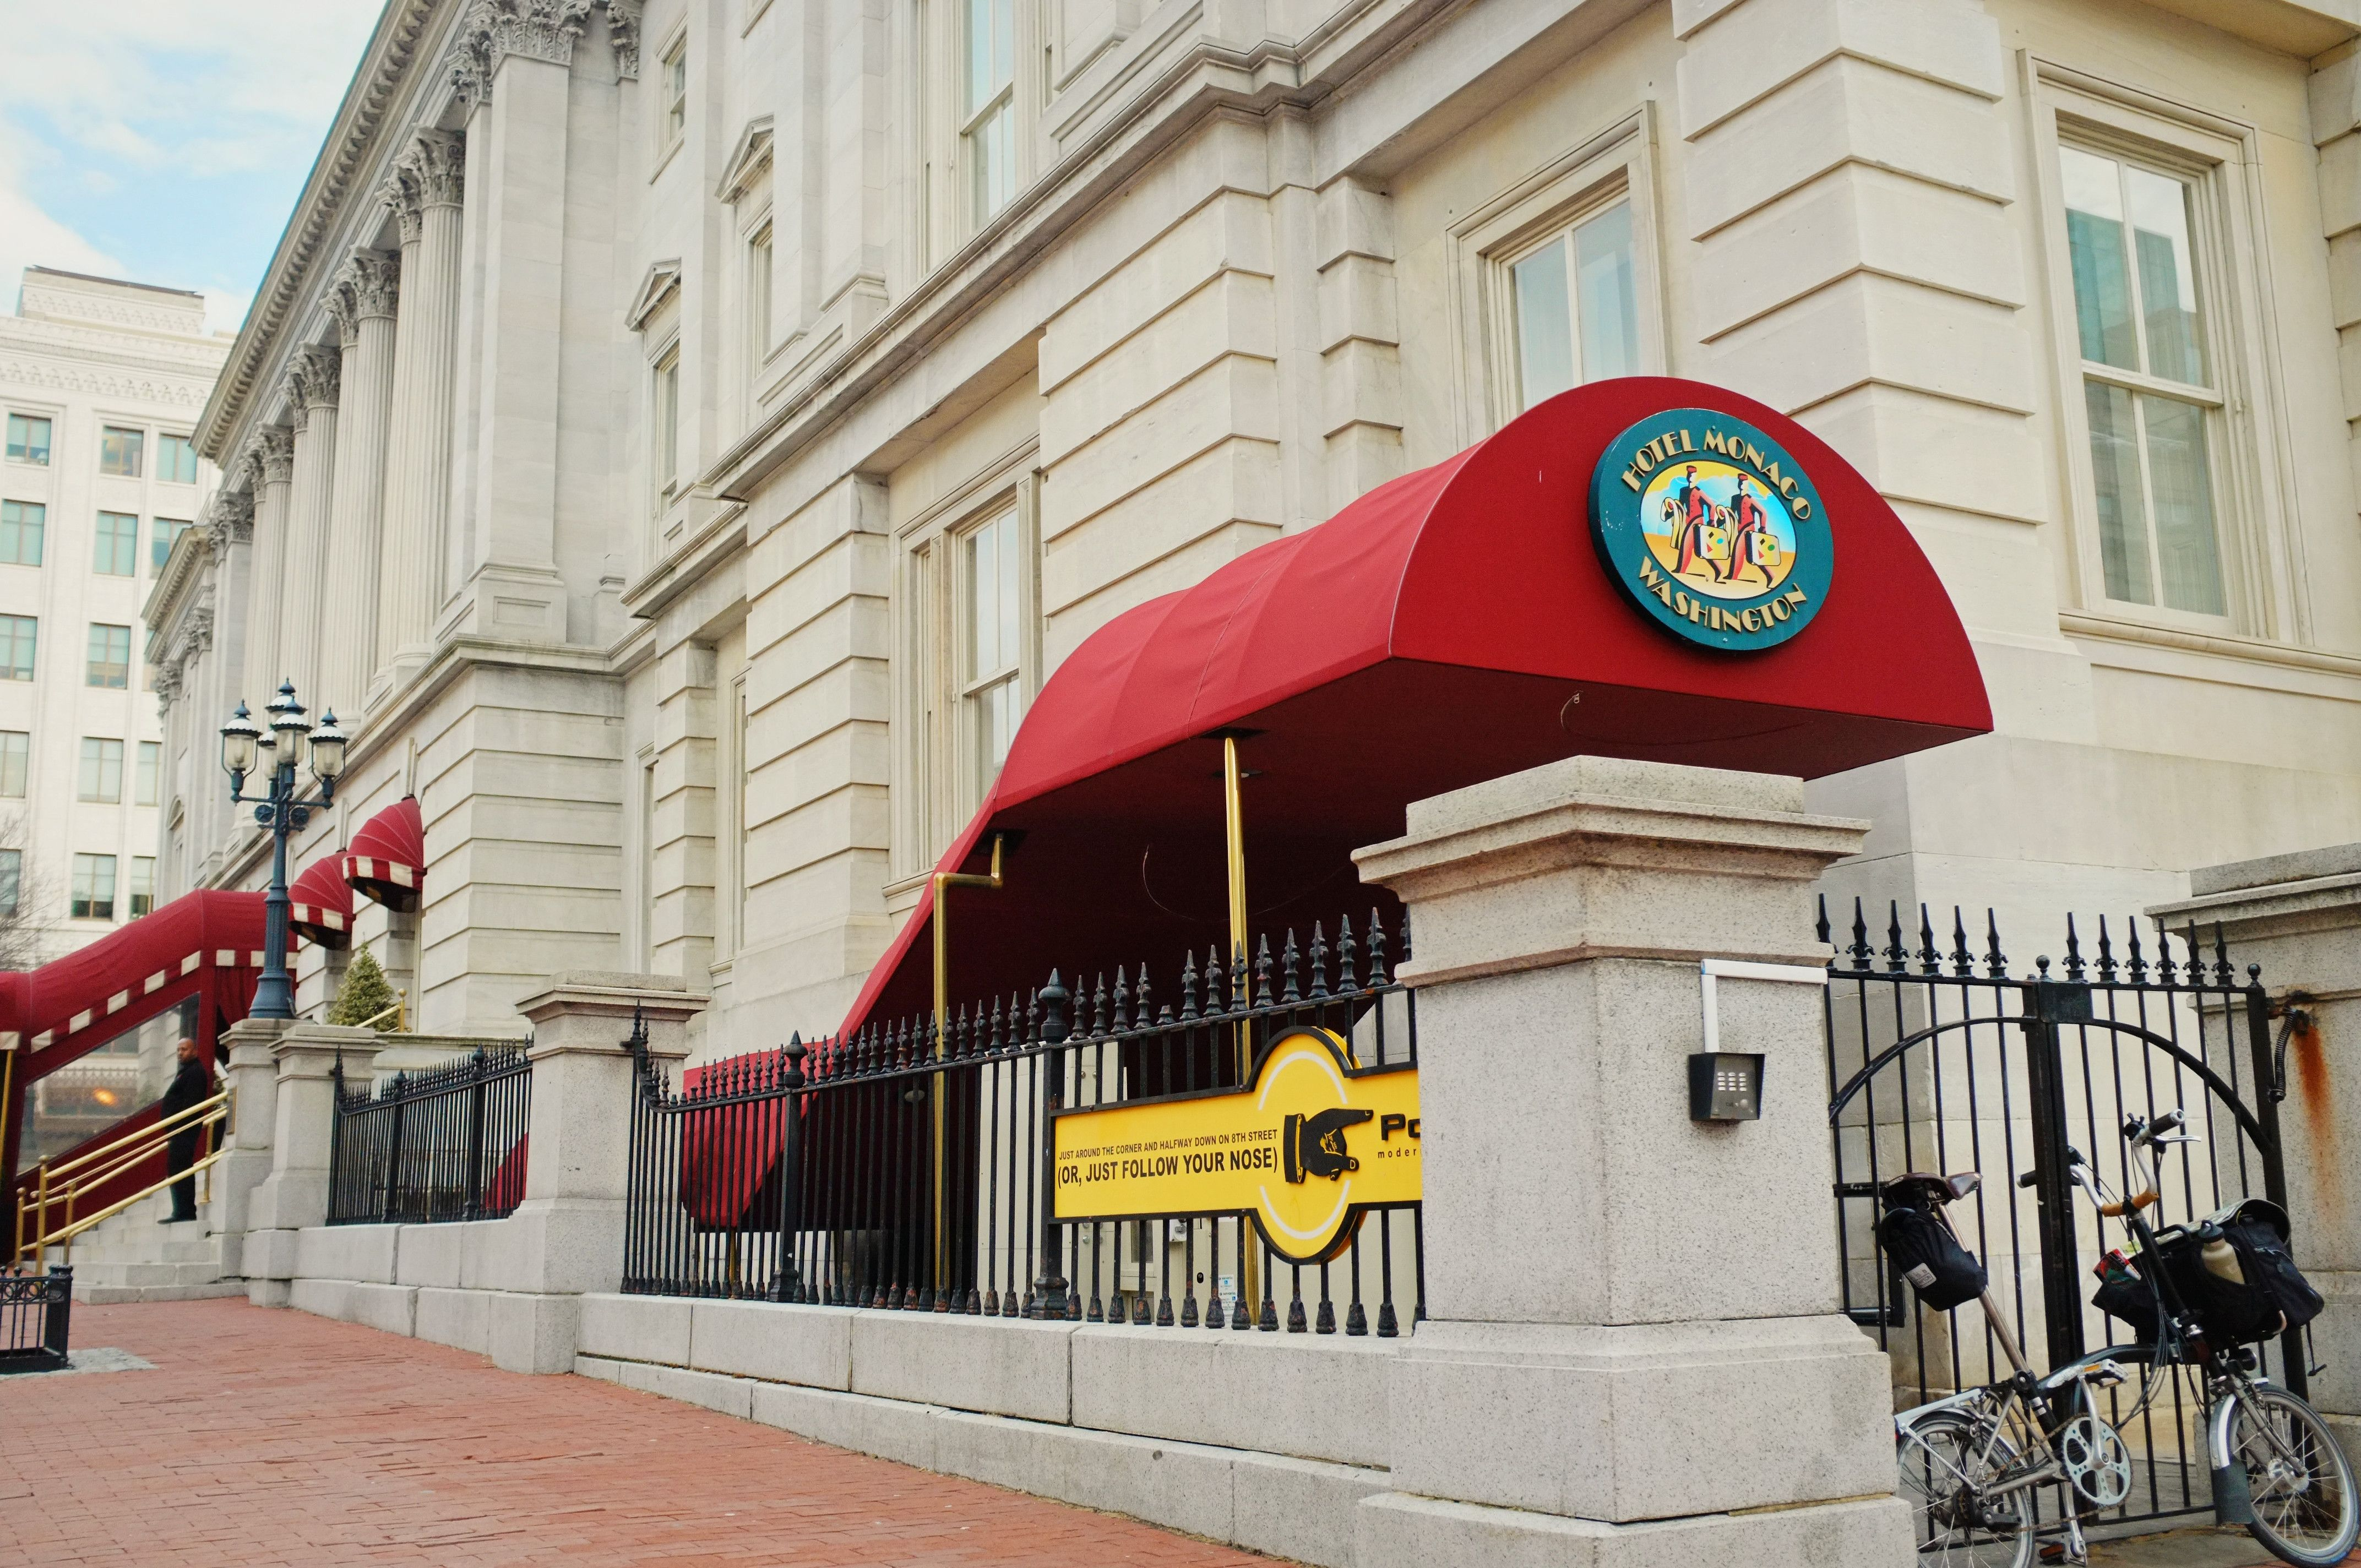 WASHINGTON DC MEMBER hotel with Bikabout map selfguided cultural